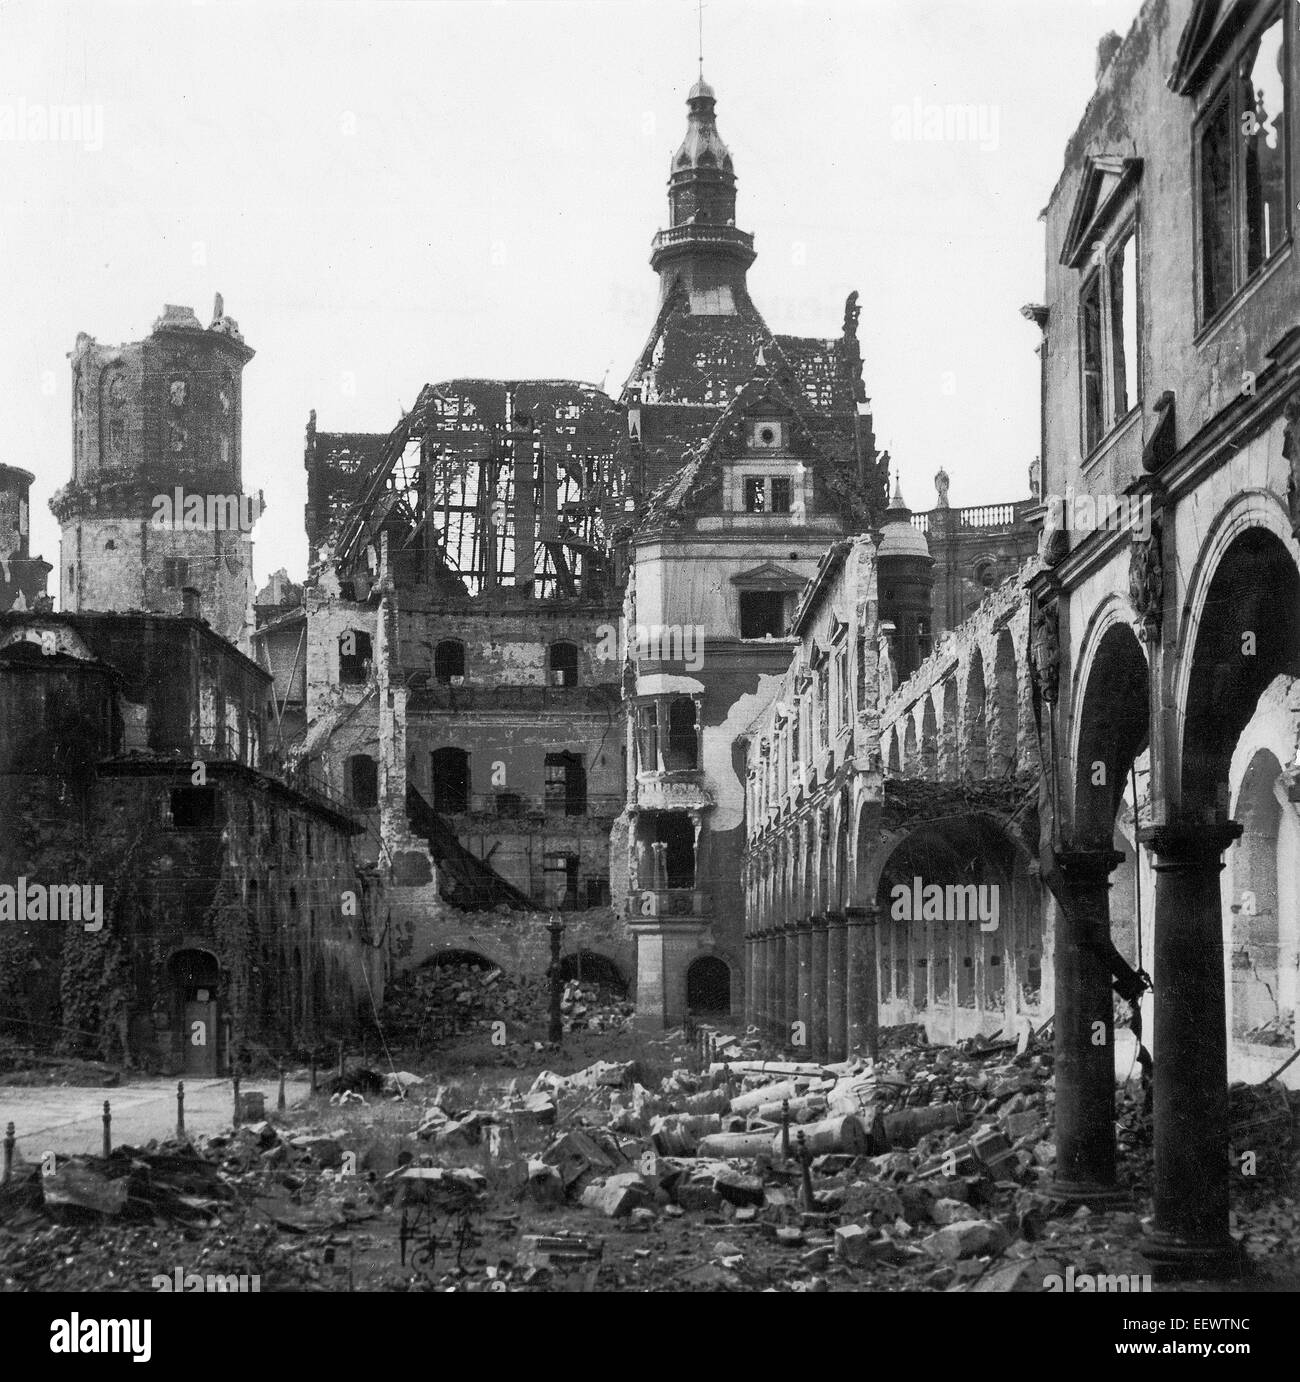 The photo by famous photographer Richard Peter sen. shows the ruin of the Stallhof (Stall Courtyard) at the Dresden Stock Photo